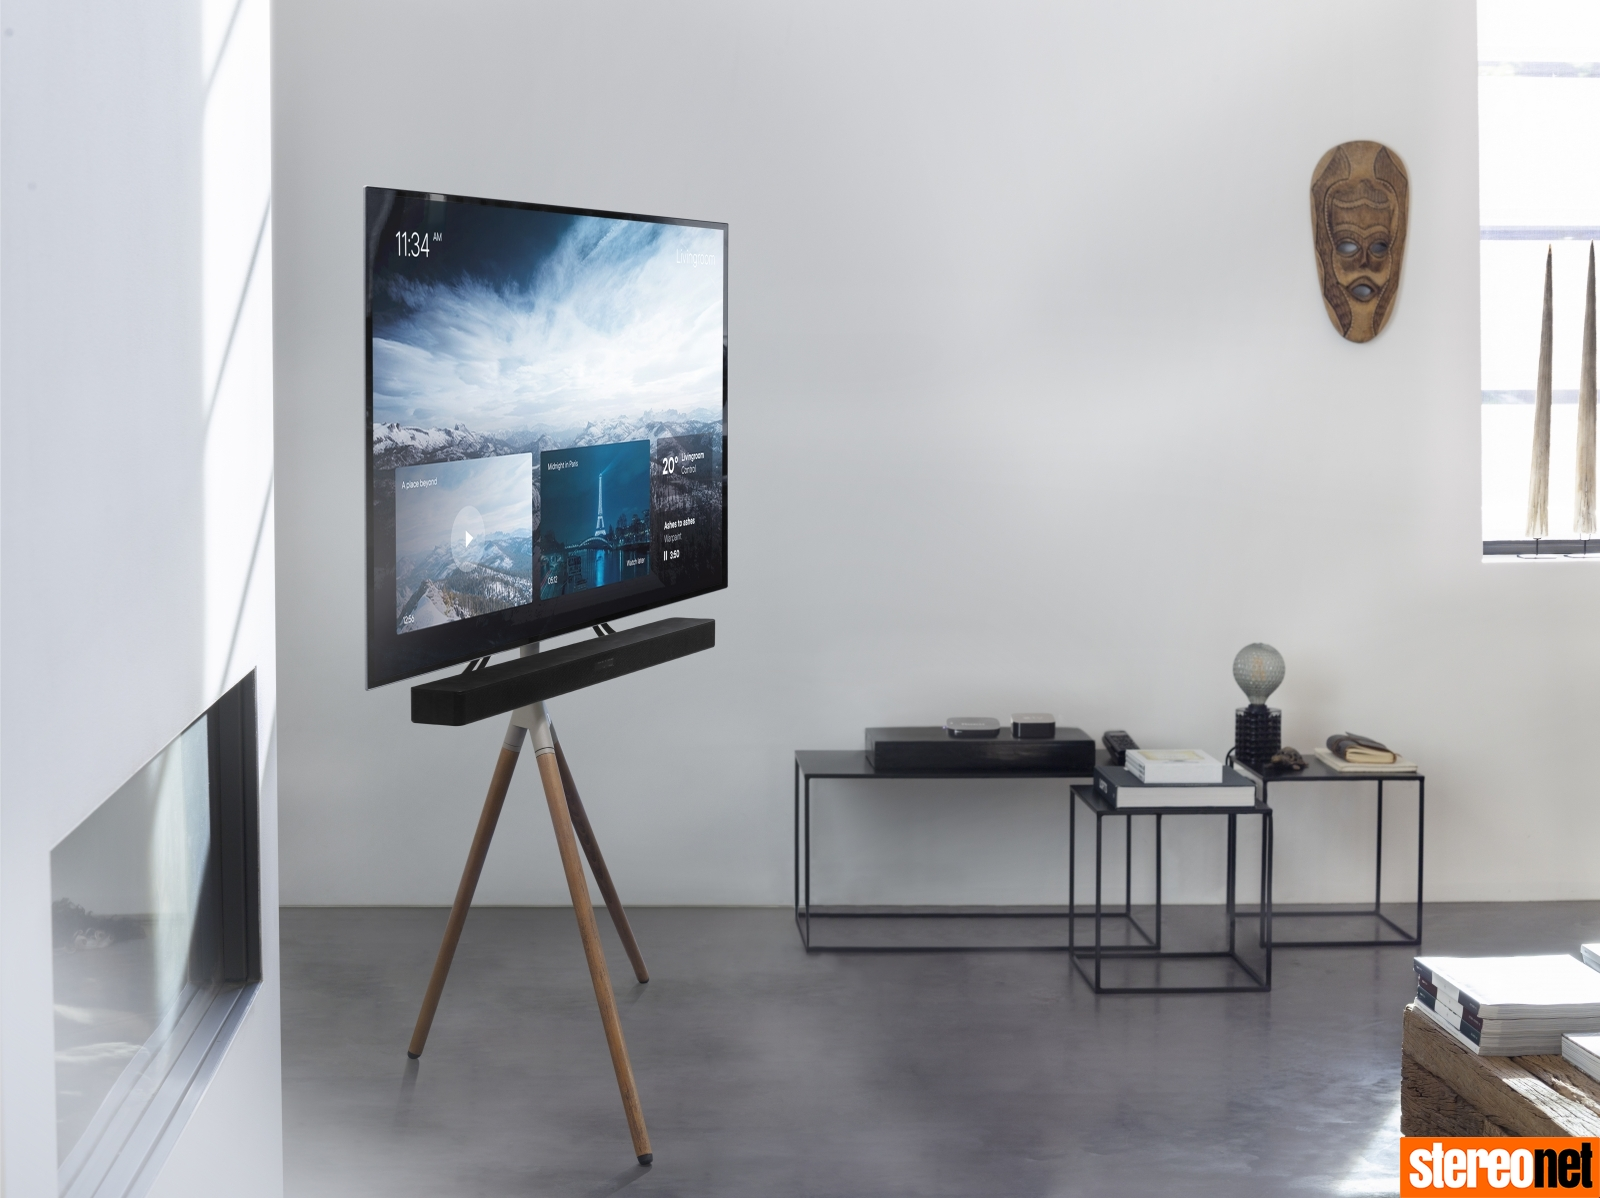 Stylish Tv Mounting Options Requiring No Professional Installation Stereonet Australia Hi Fi Home Cinema News